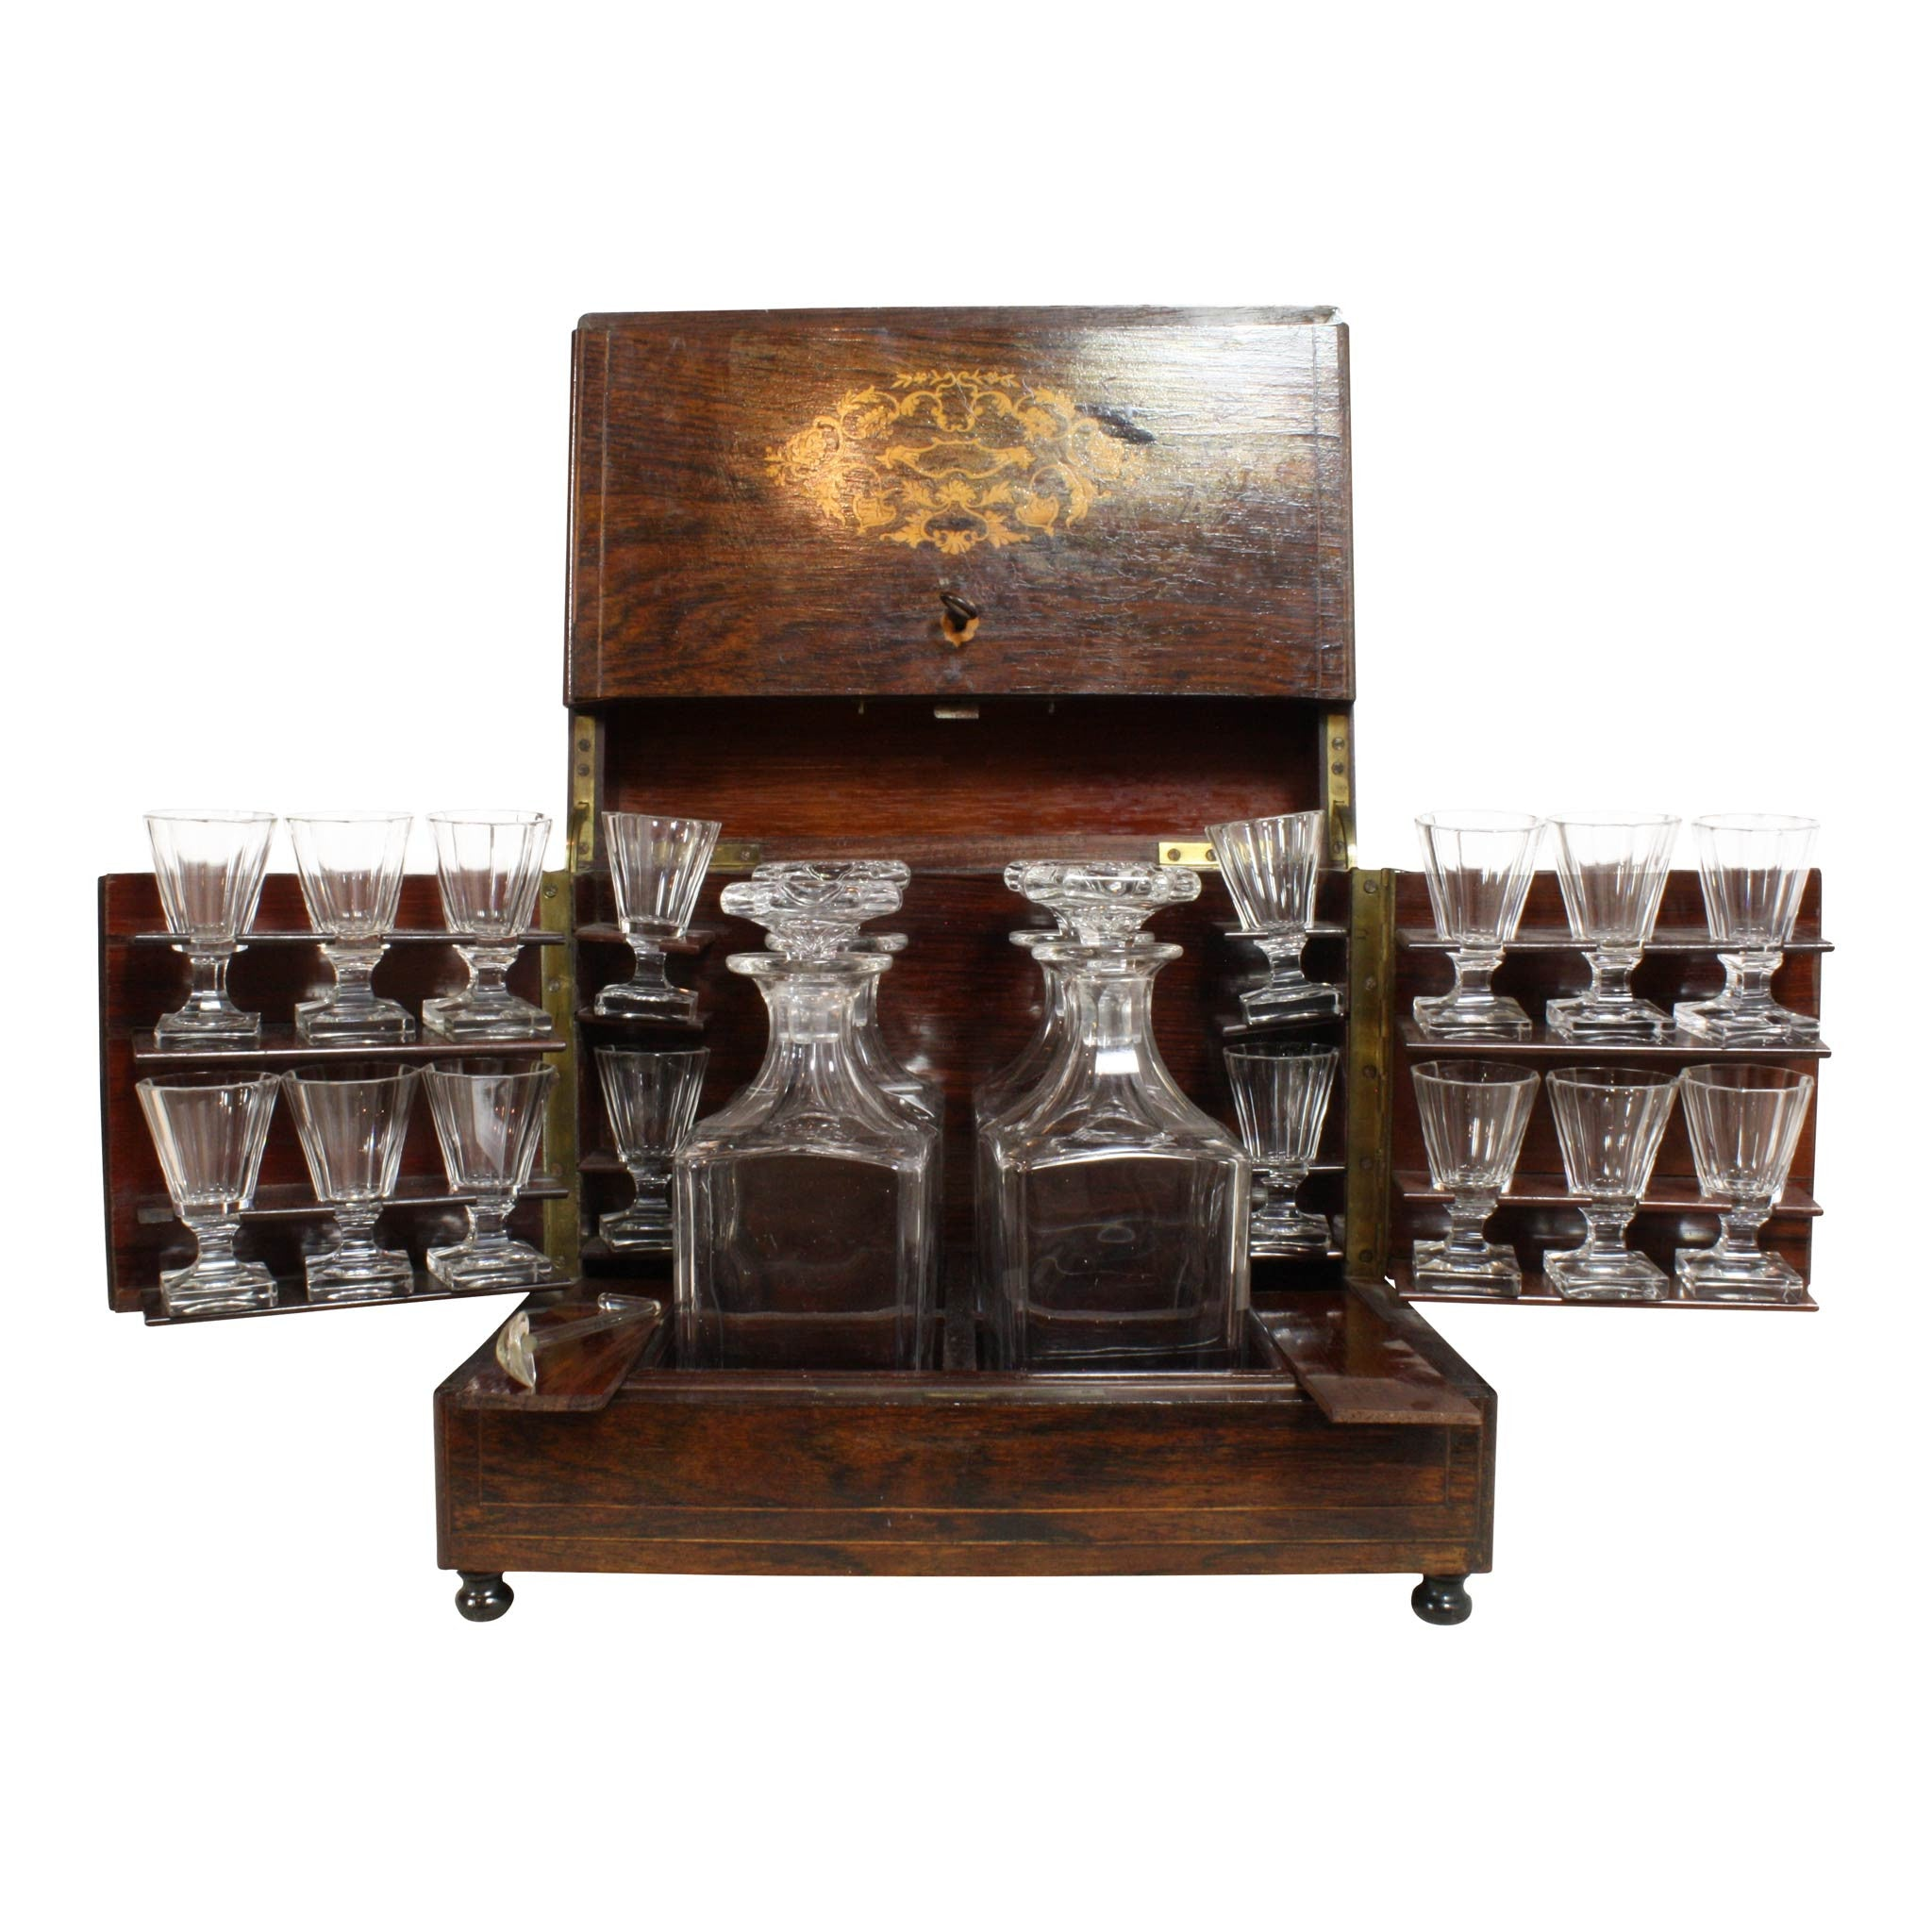 ski-country-antiques - Liquor Set